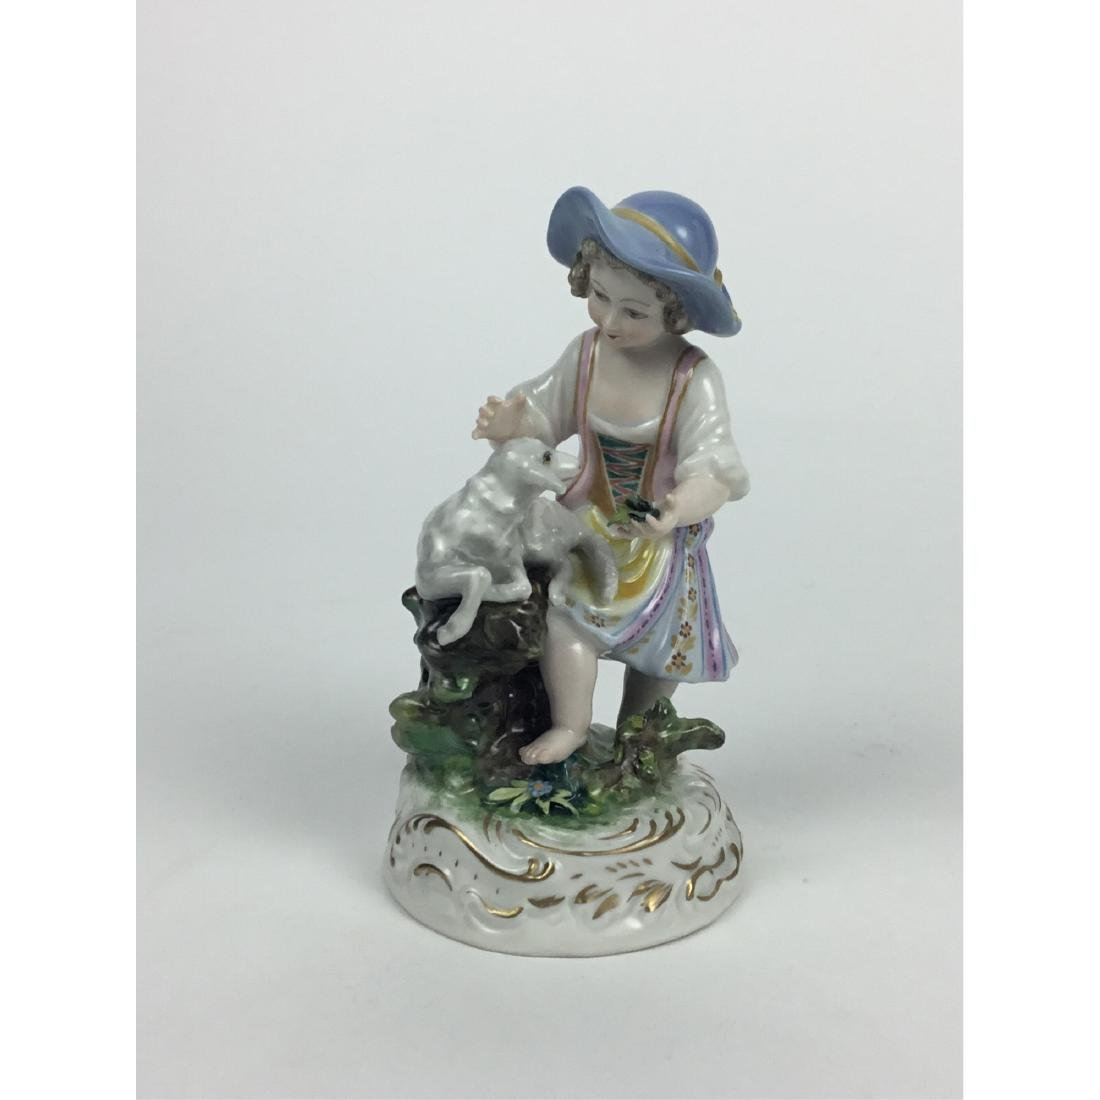 MEISSEN COUNTRY GIRL WITH SHEEP FIGURINE